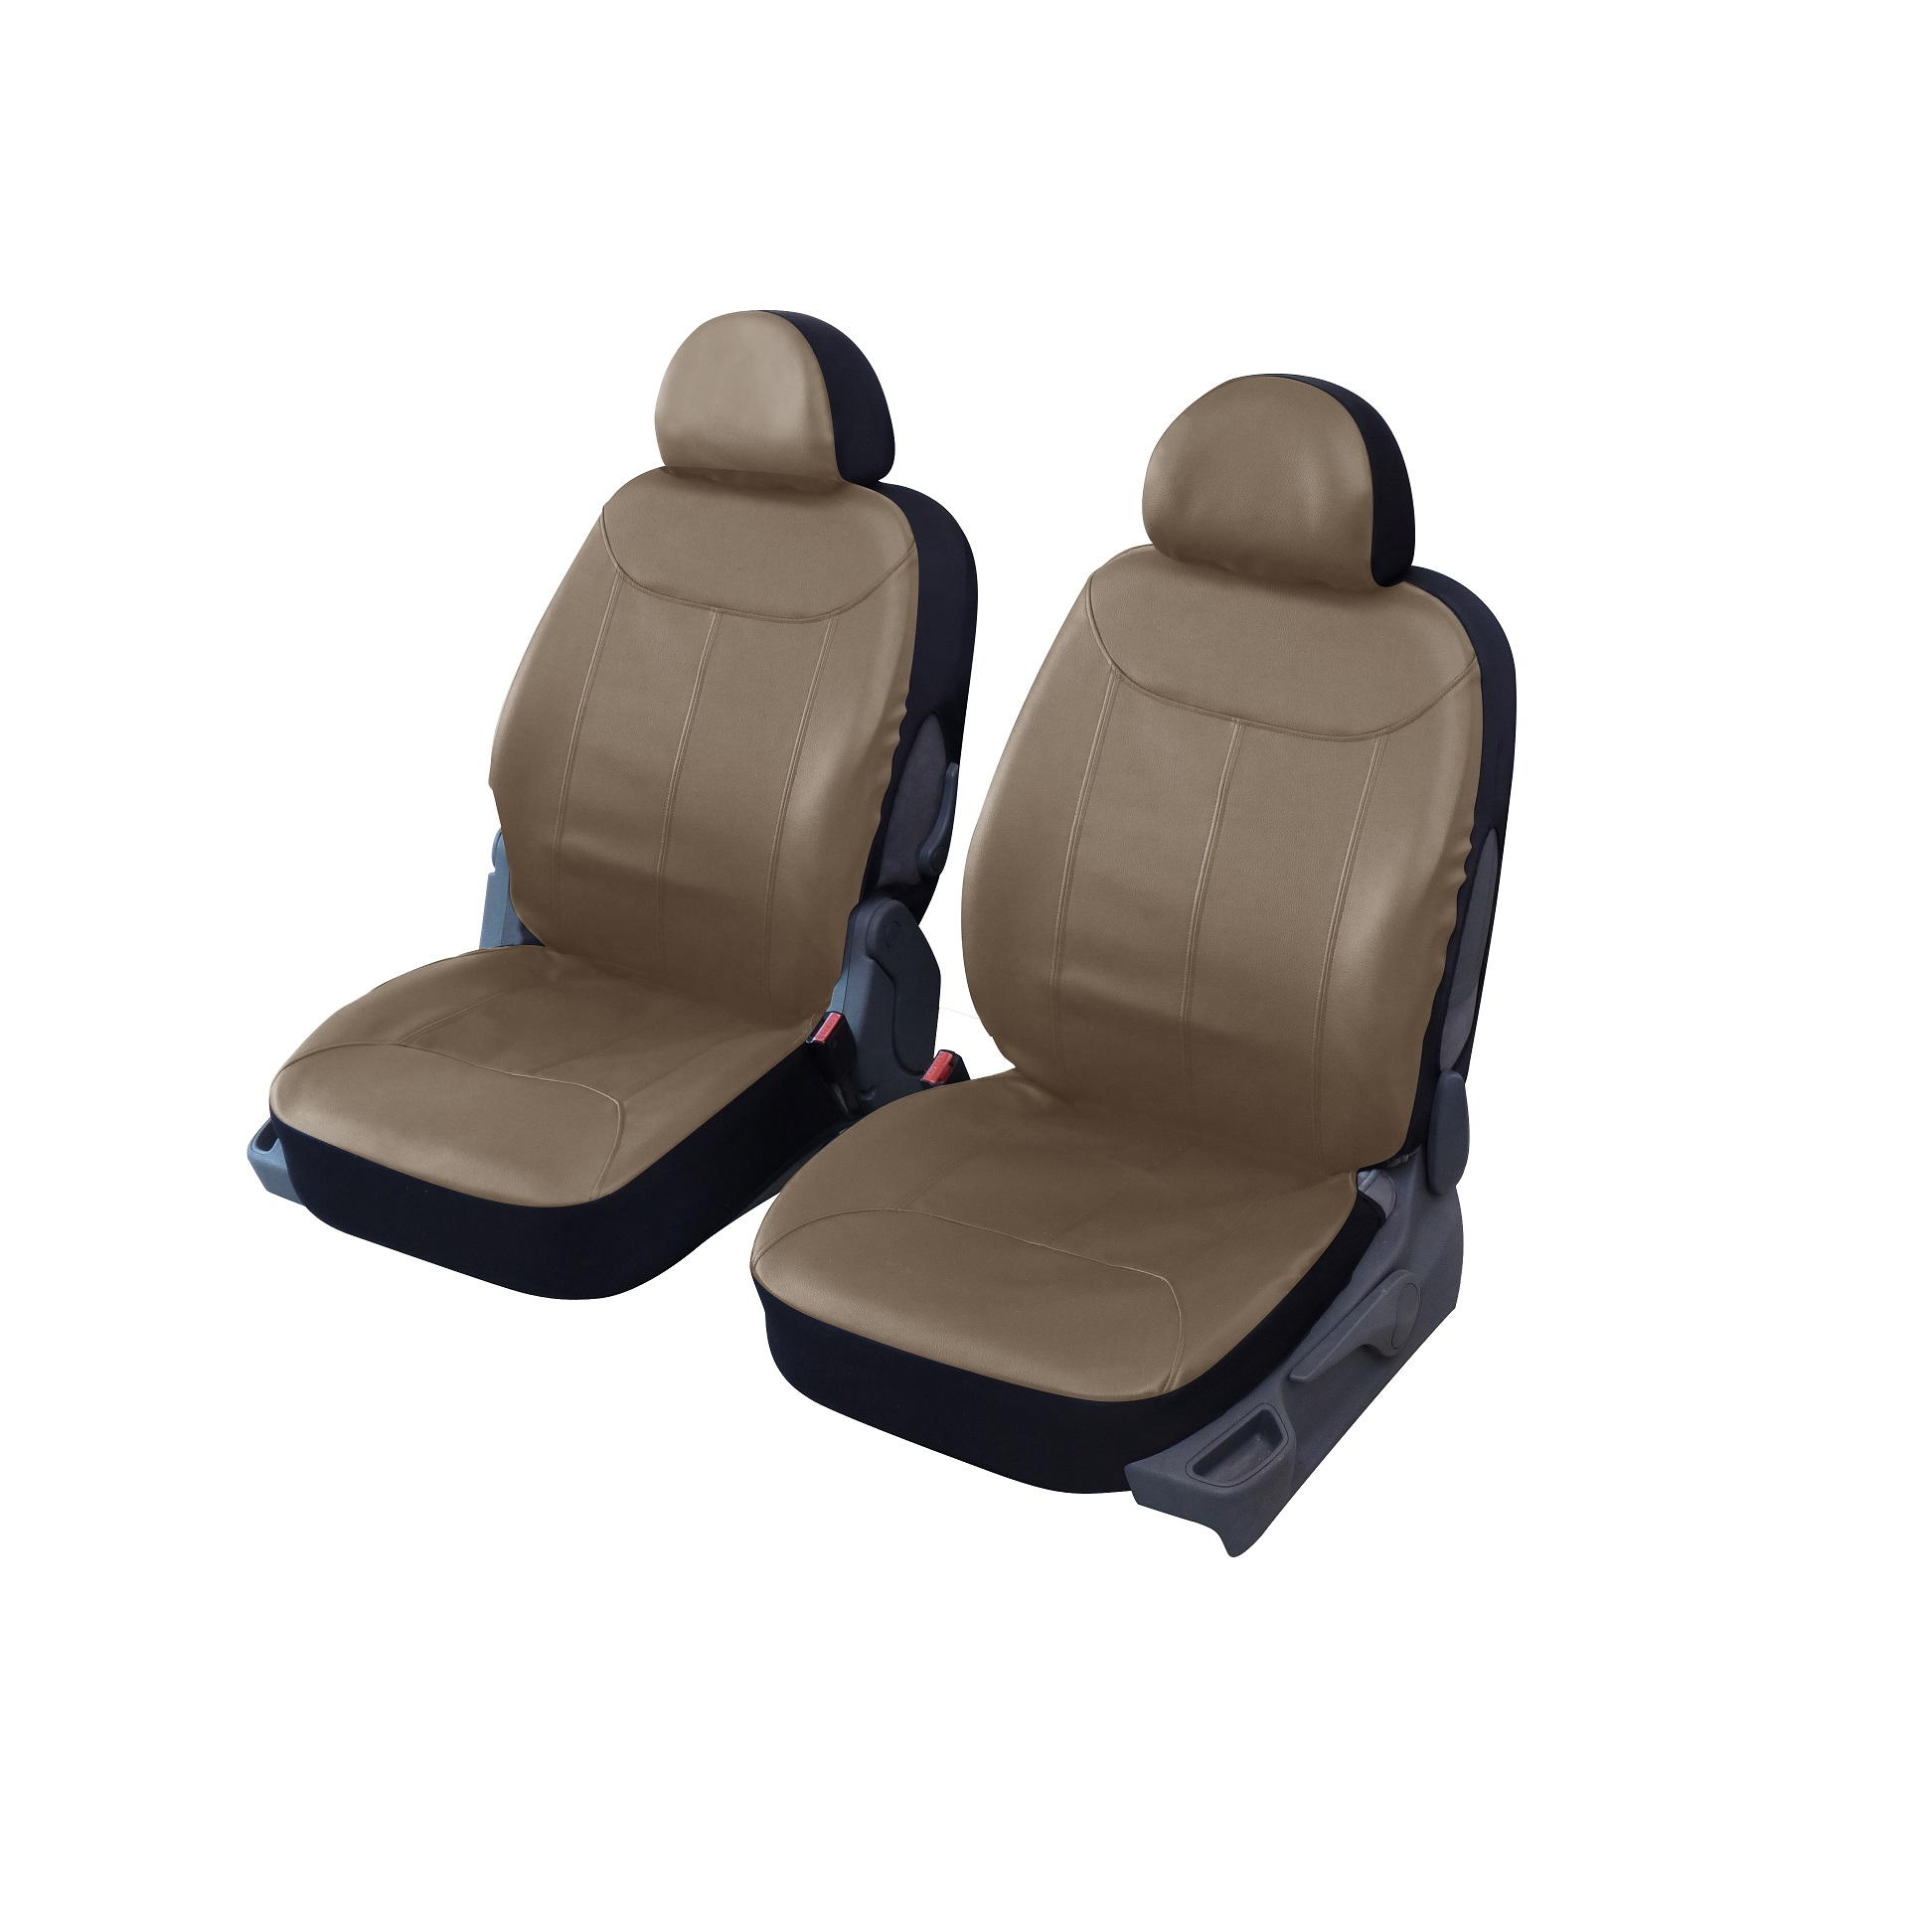 Housse de si ge auto universelle simili cuir beige texas 2 for Housse siege auto cuir